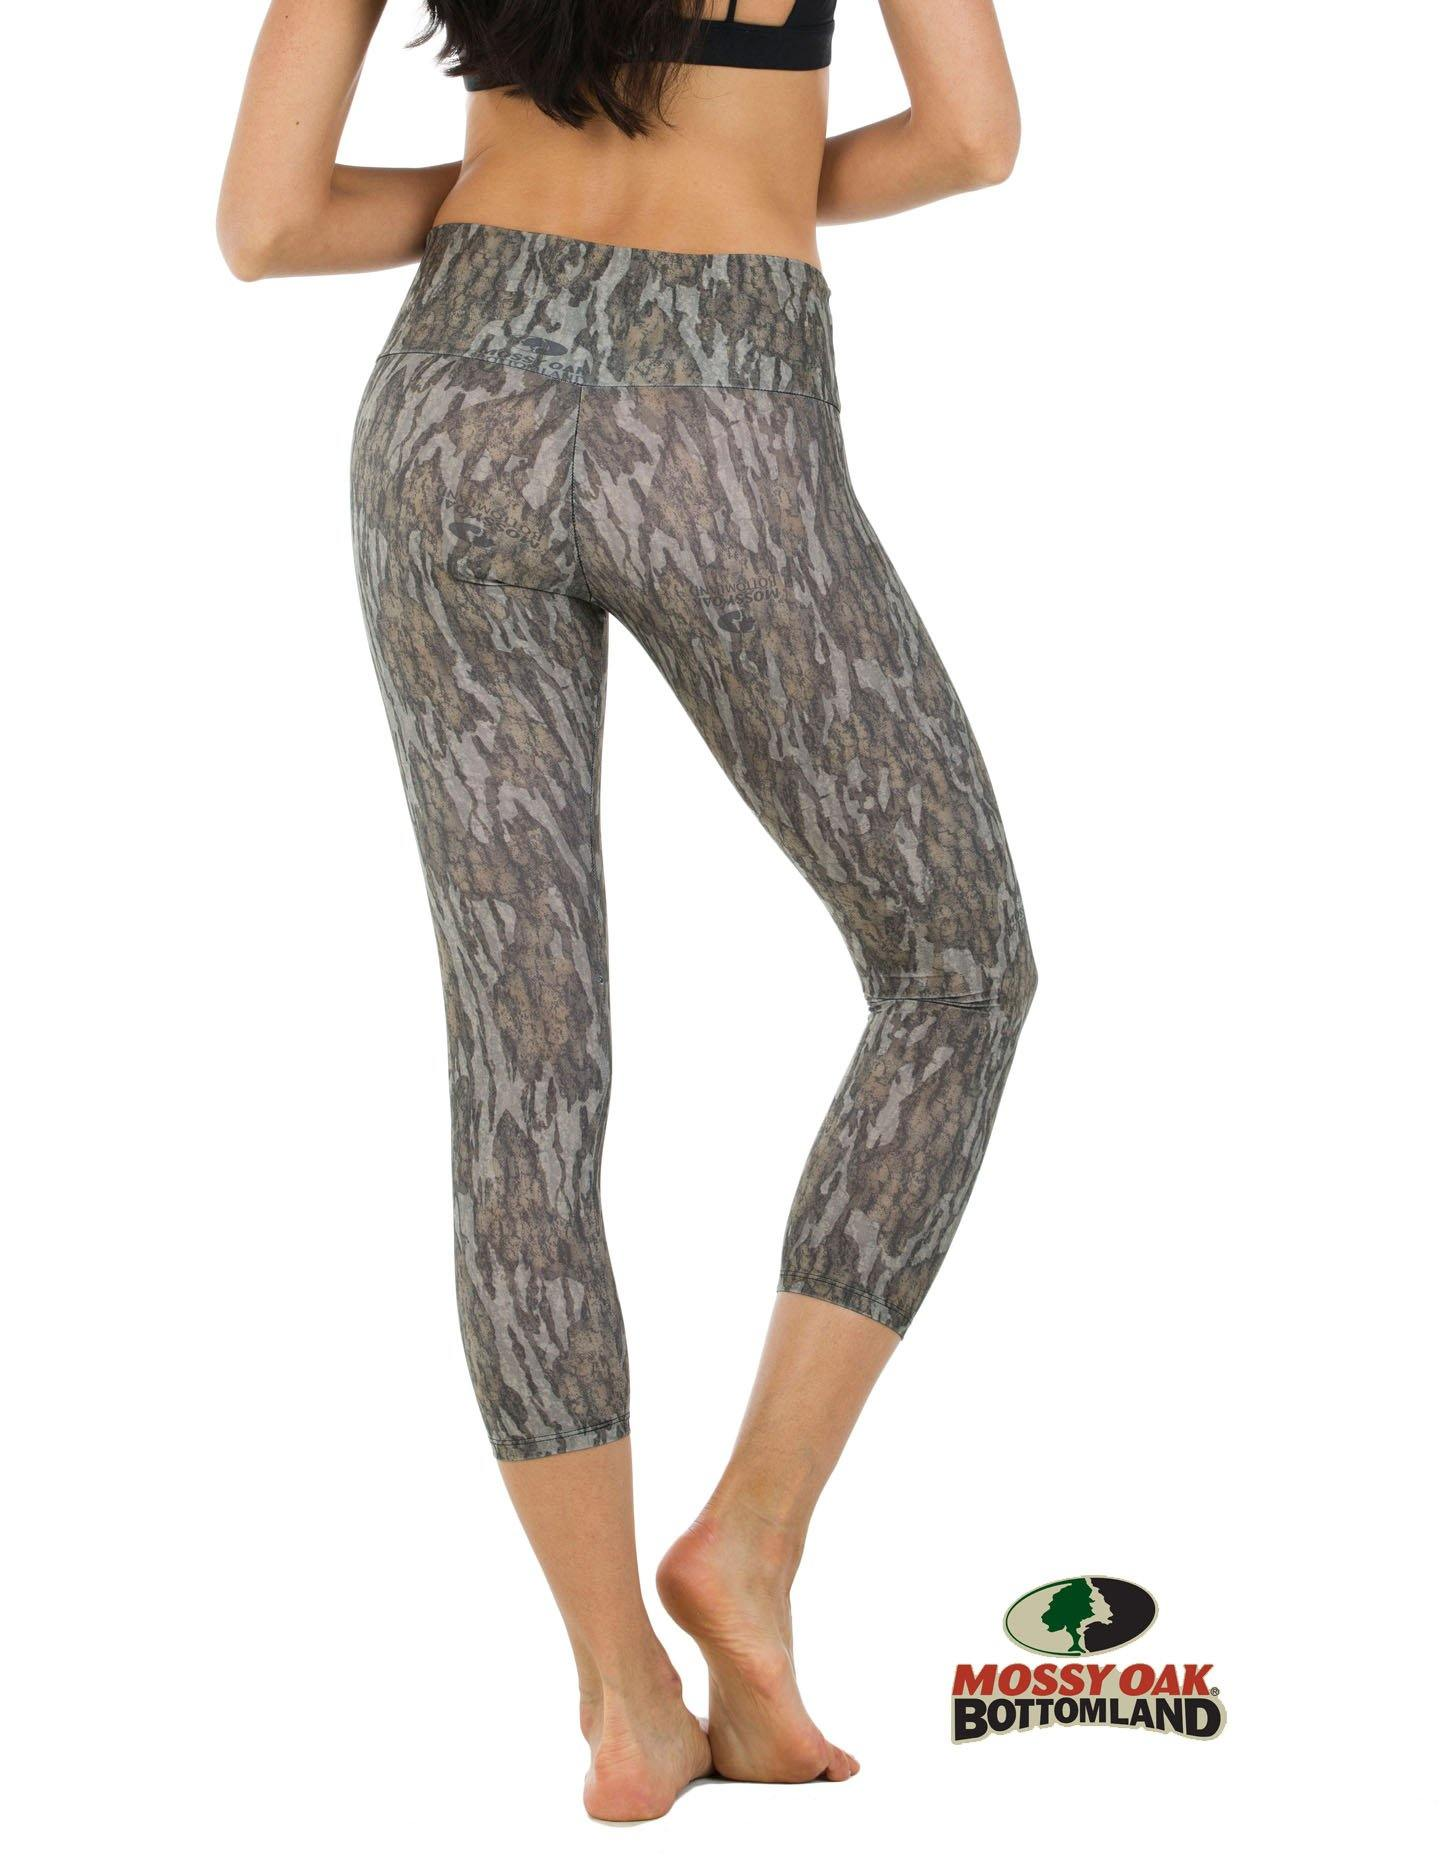 Apsara Leggings High Waist Cropped, Mossy Oak Bottomland